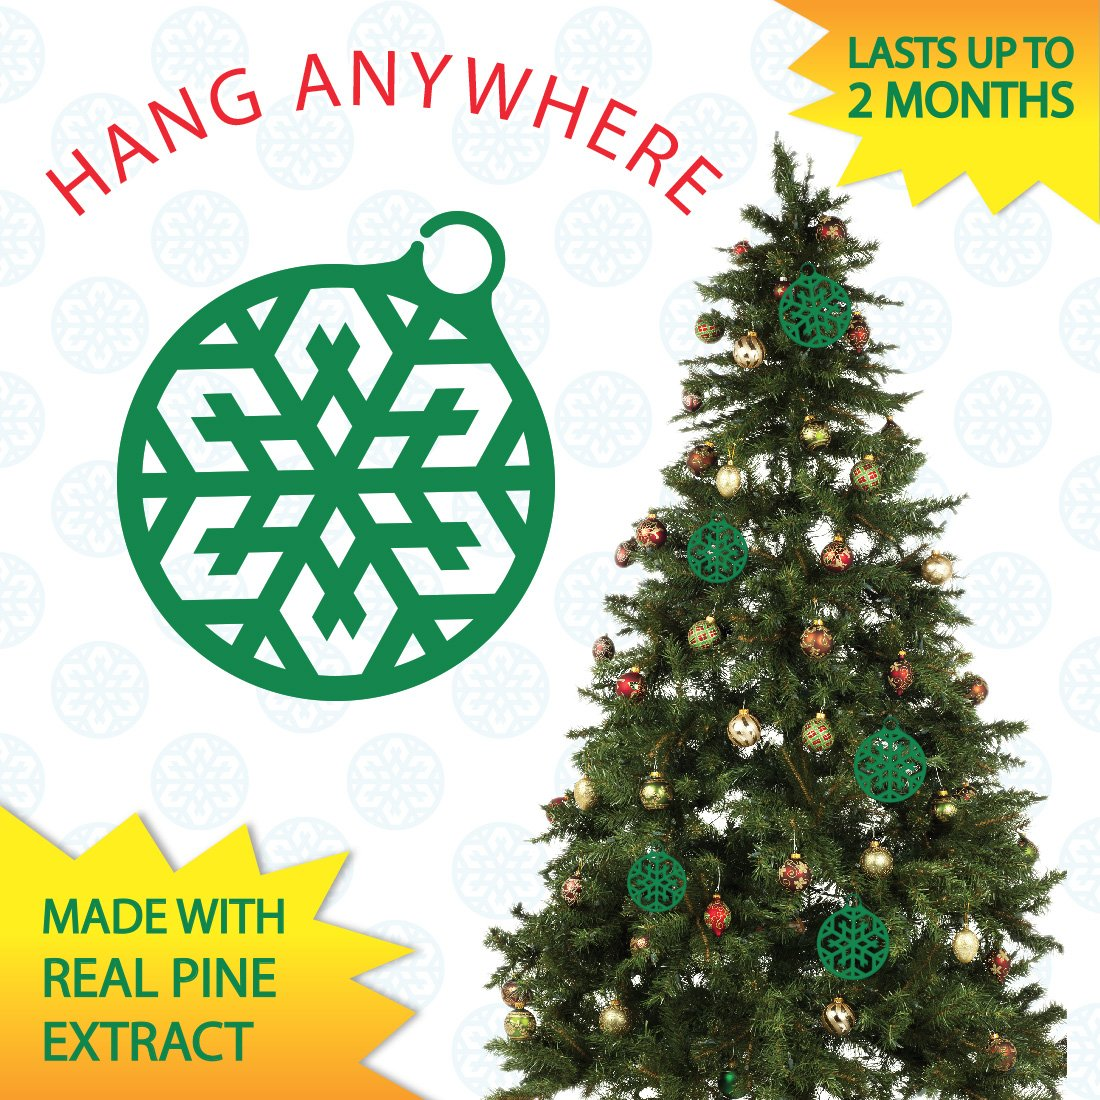 Amazon.com: Pine Scents: All Natural Pine Infused Ornaments - Smells ...